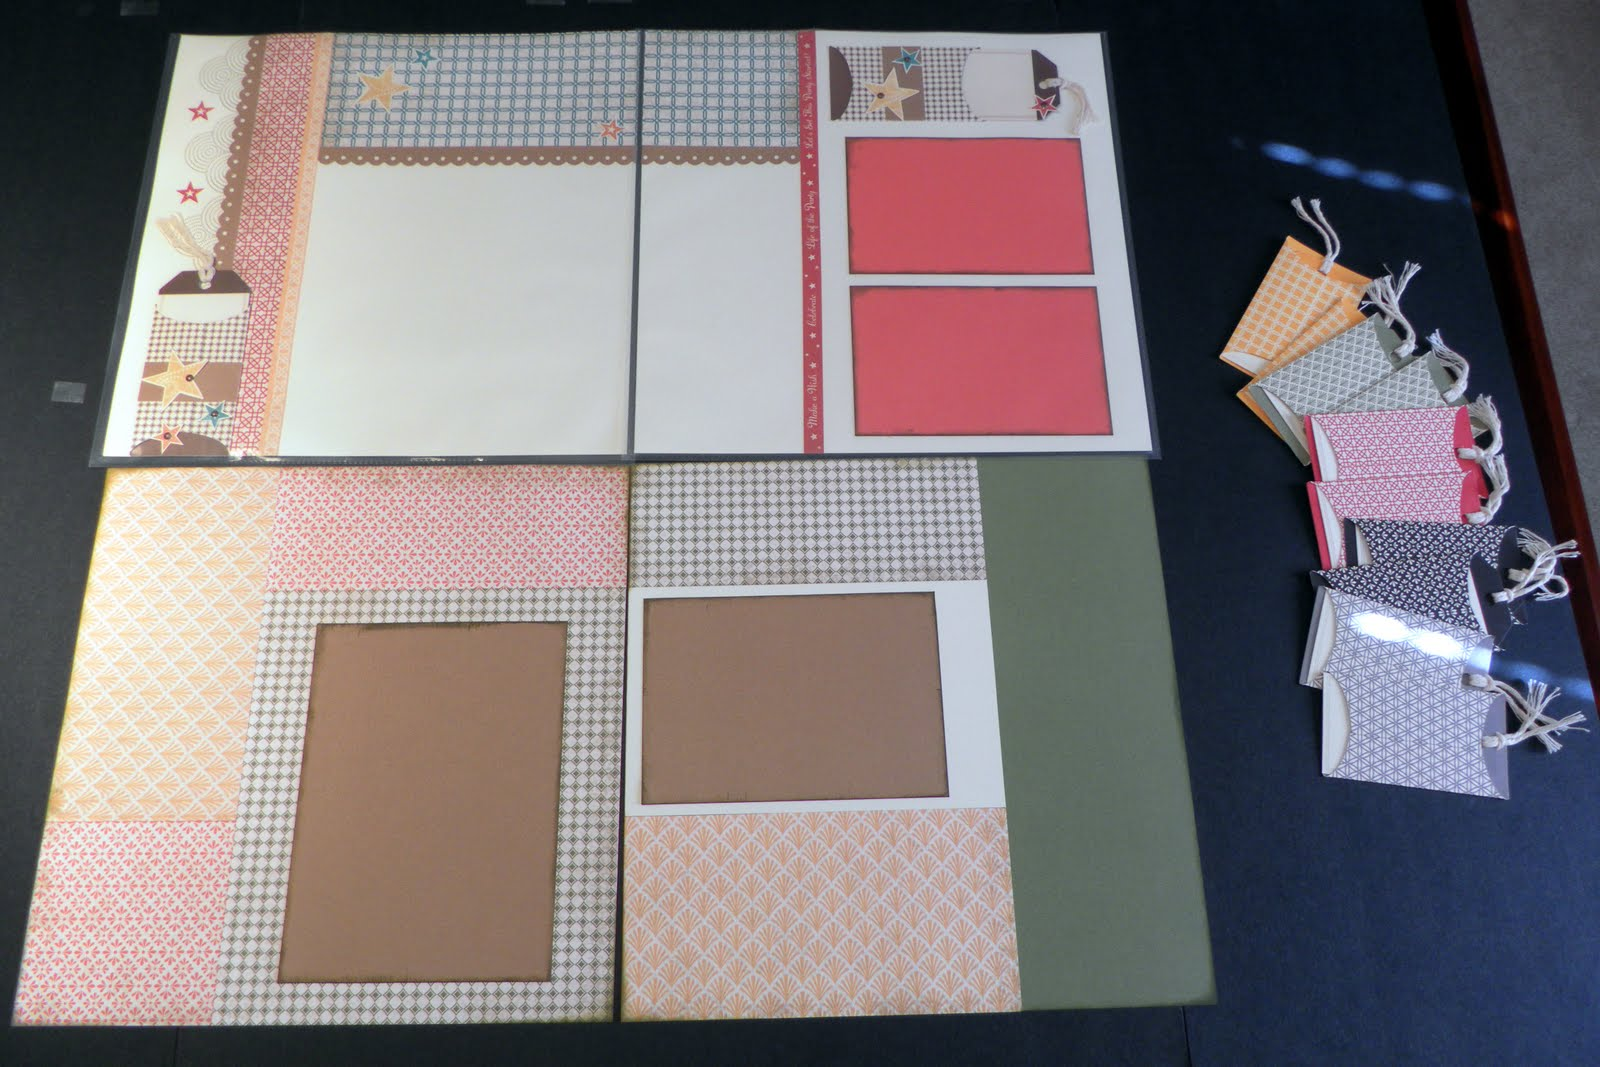 How to make scrapbook creative - This Paper Packet Was Very Hard To Photograph These Are The 4 Pages 2 Two Page Layouts We Will Make At The September Scrapbooking